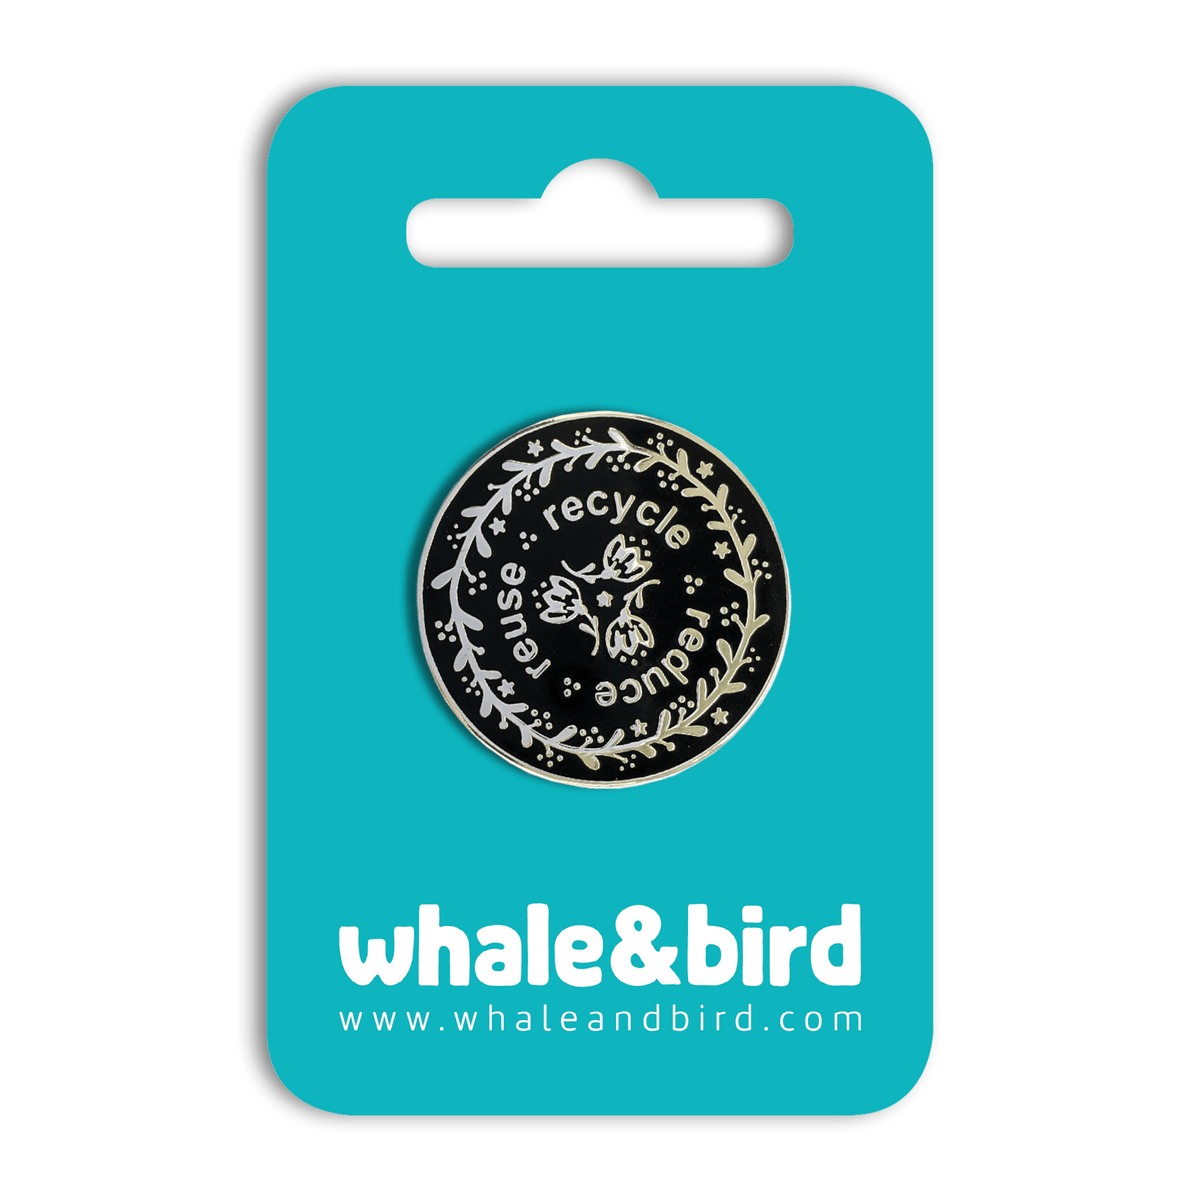 Reduce, Reuse, Recycle Hard Enamel Pin by Mary Joy Harris - Whale and Bird